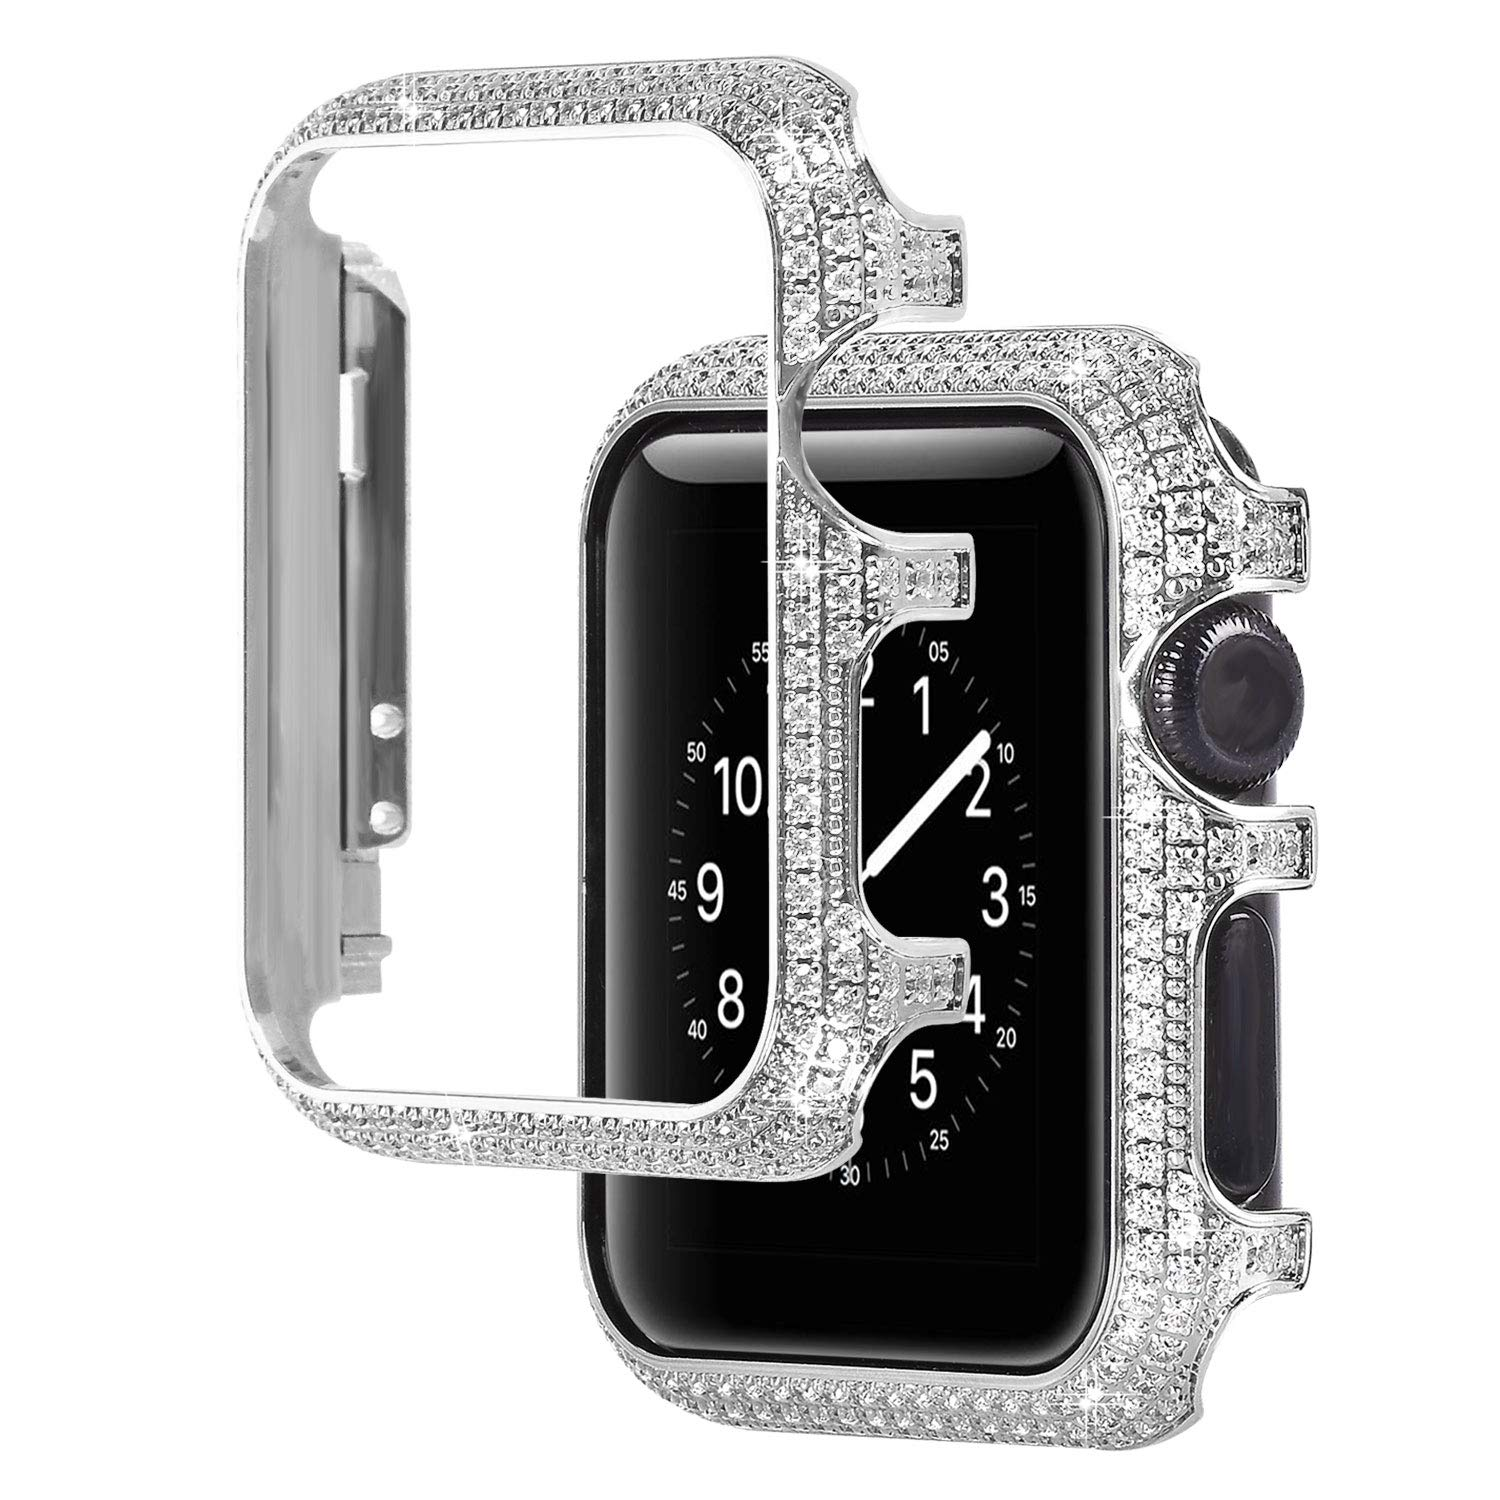 For Apple Watch 38mm, LolStore Sparkle Rhinestone Glitter Diamond Aluminum iWatch Face Cover Metal Protective Frame Case Protector Bumper for iWatch Series 1/2/3 - Silver by LolStore